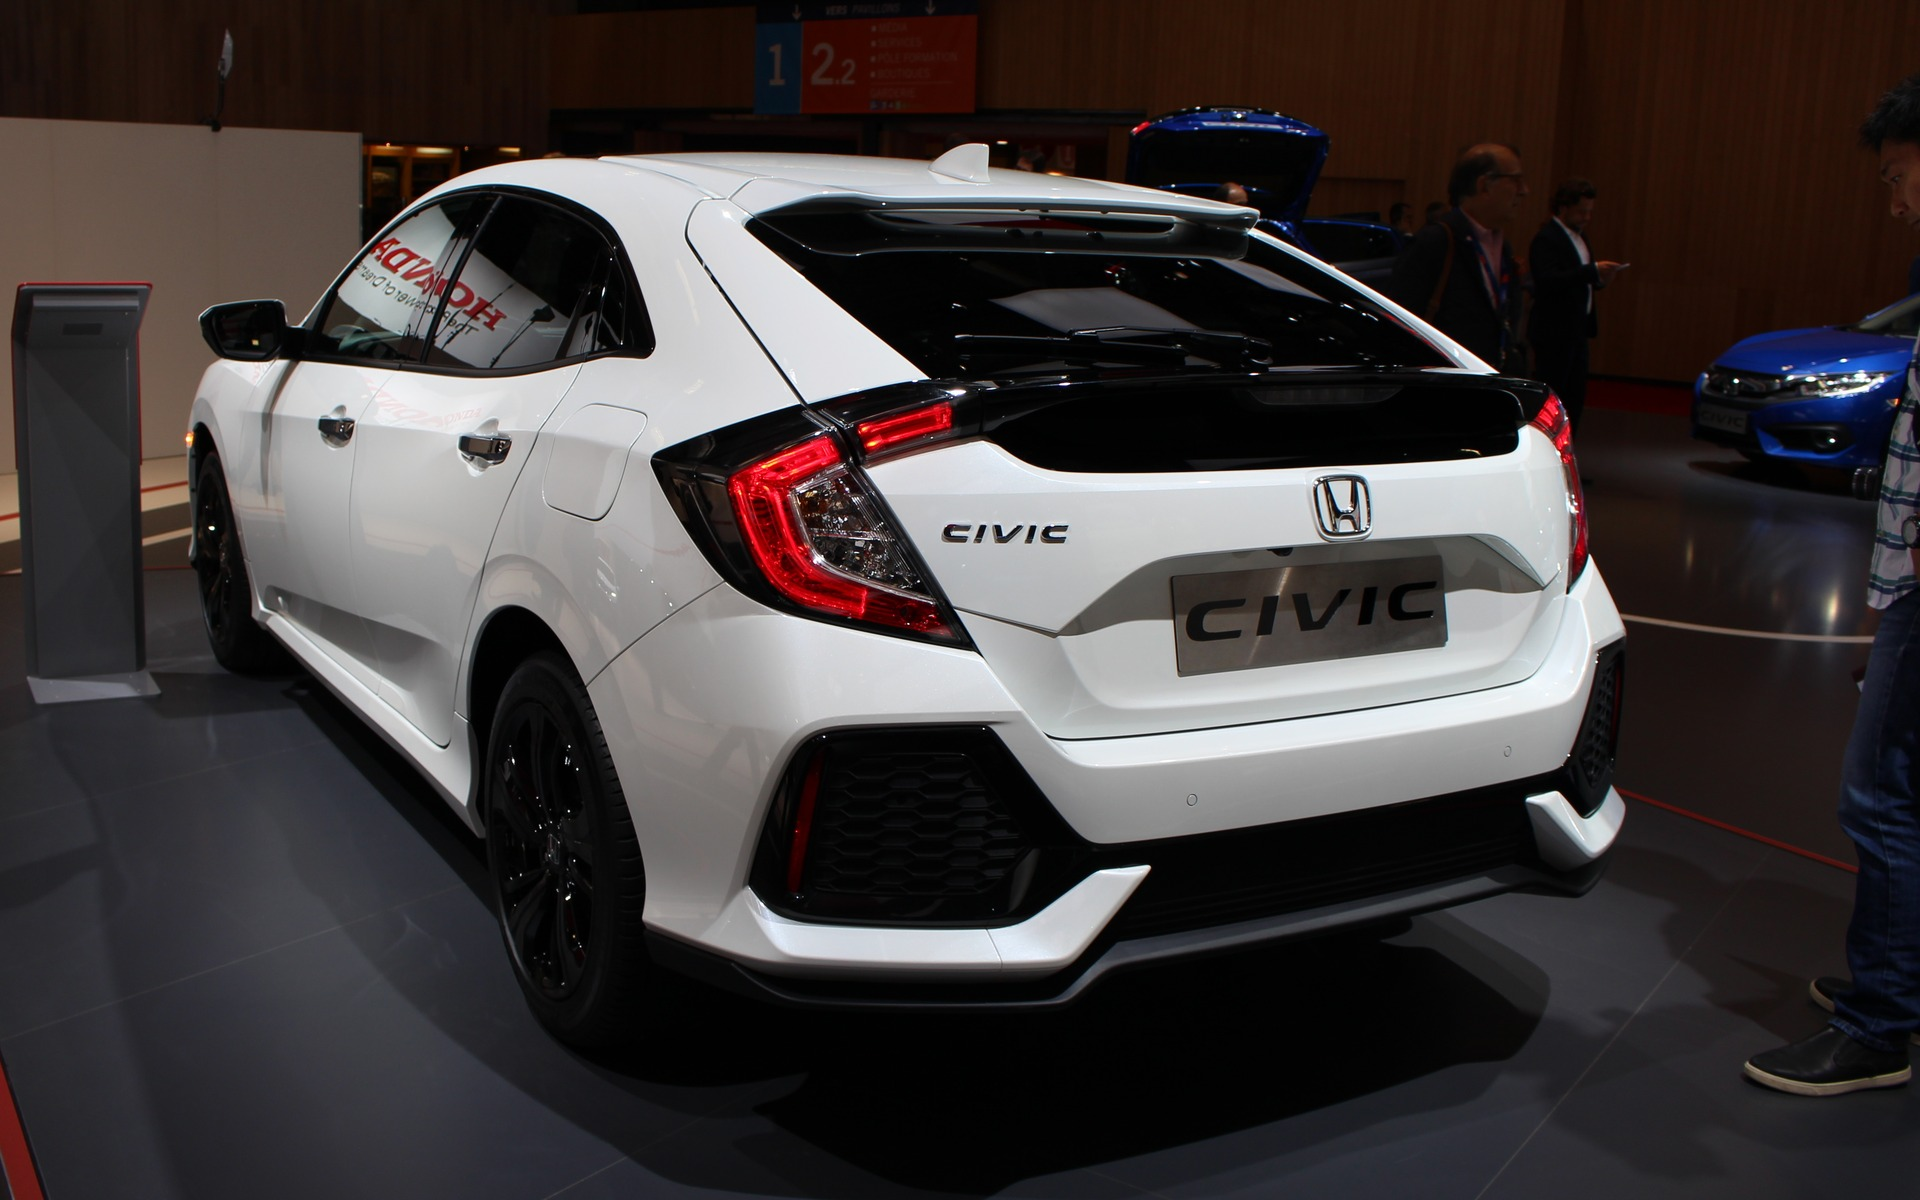 Used Honda Civic >> Here is the Production Version of the 2017 Honda Civic Hatchback - 2/18